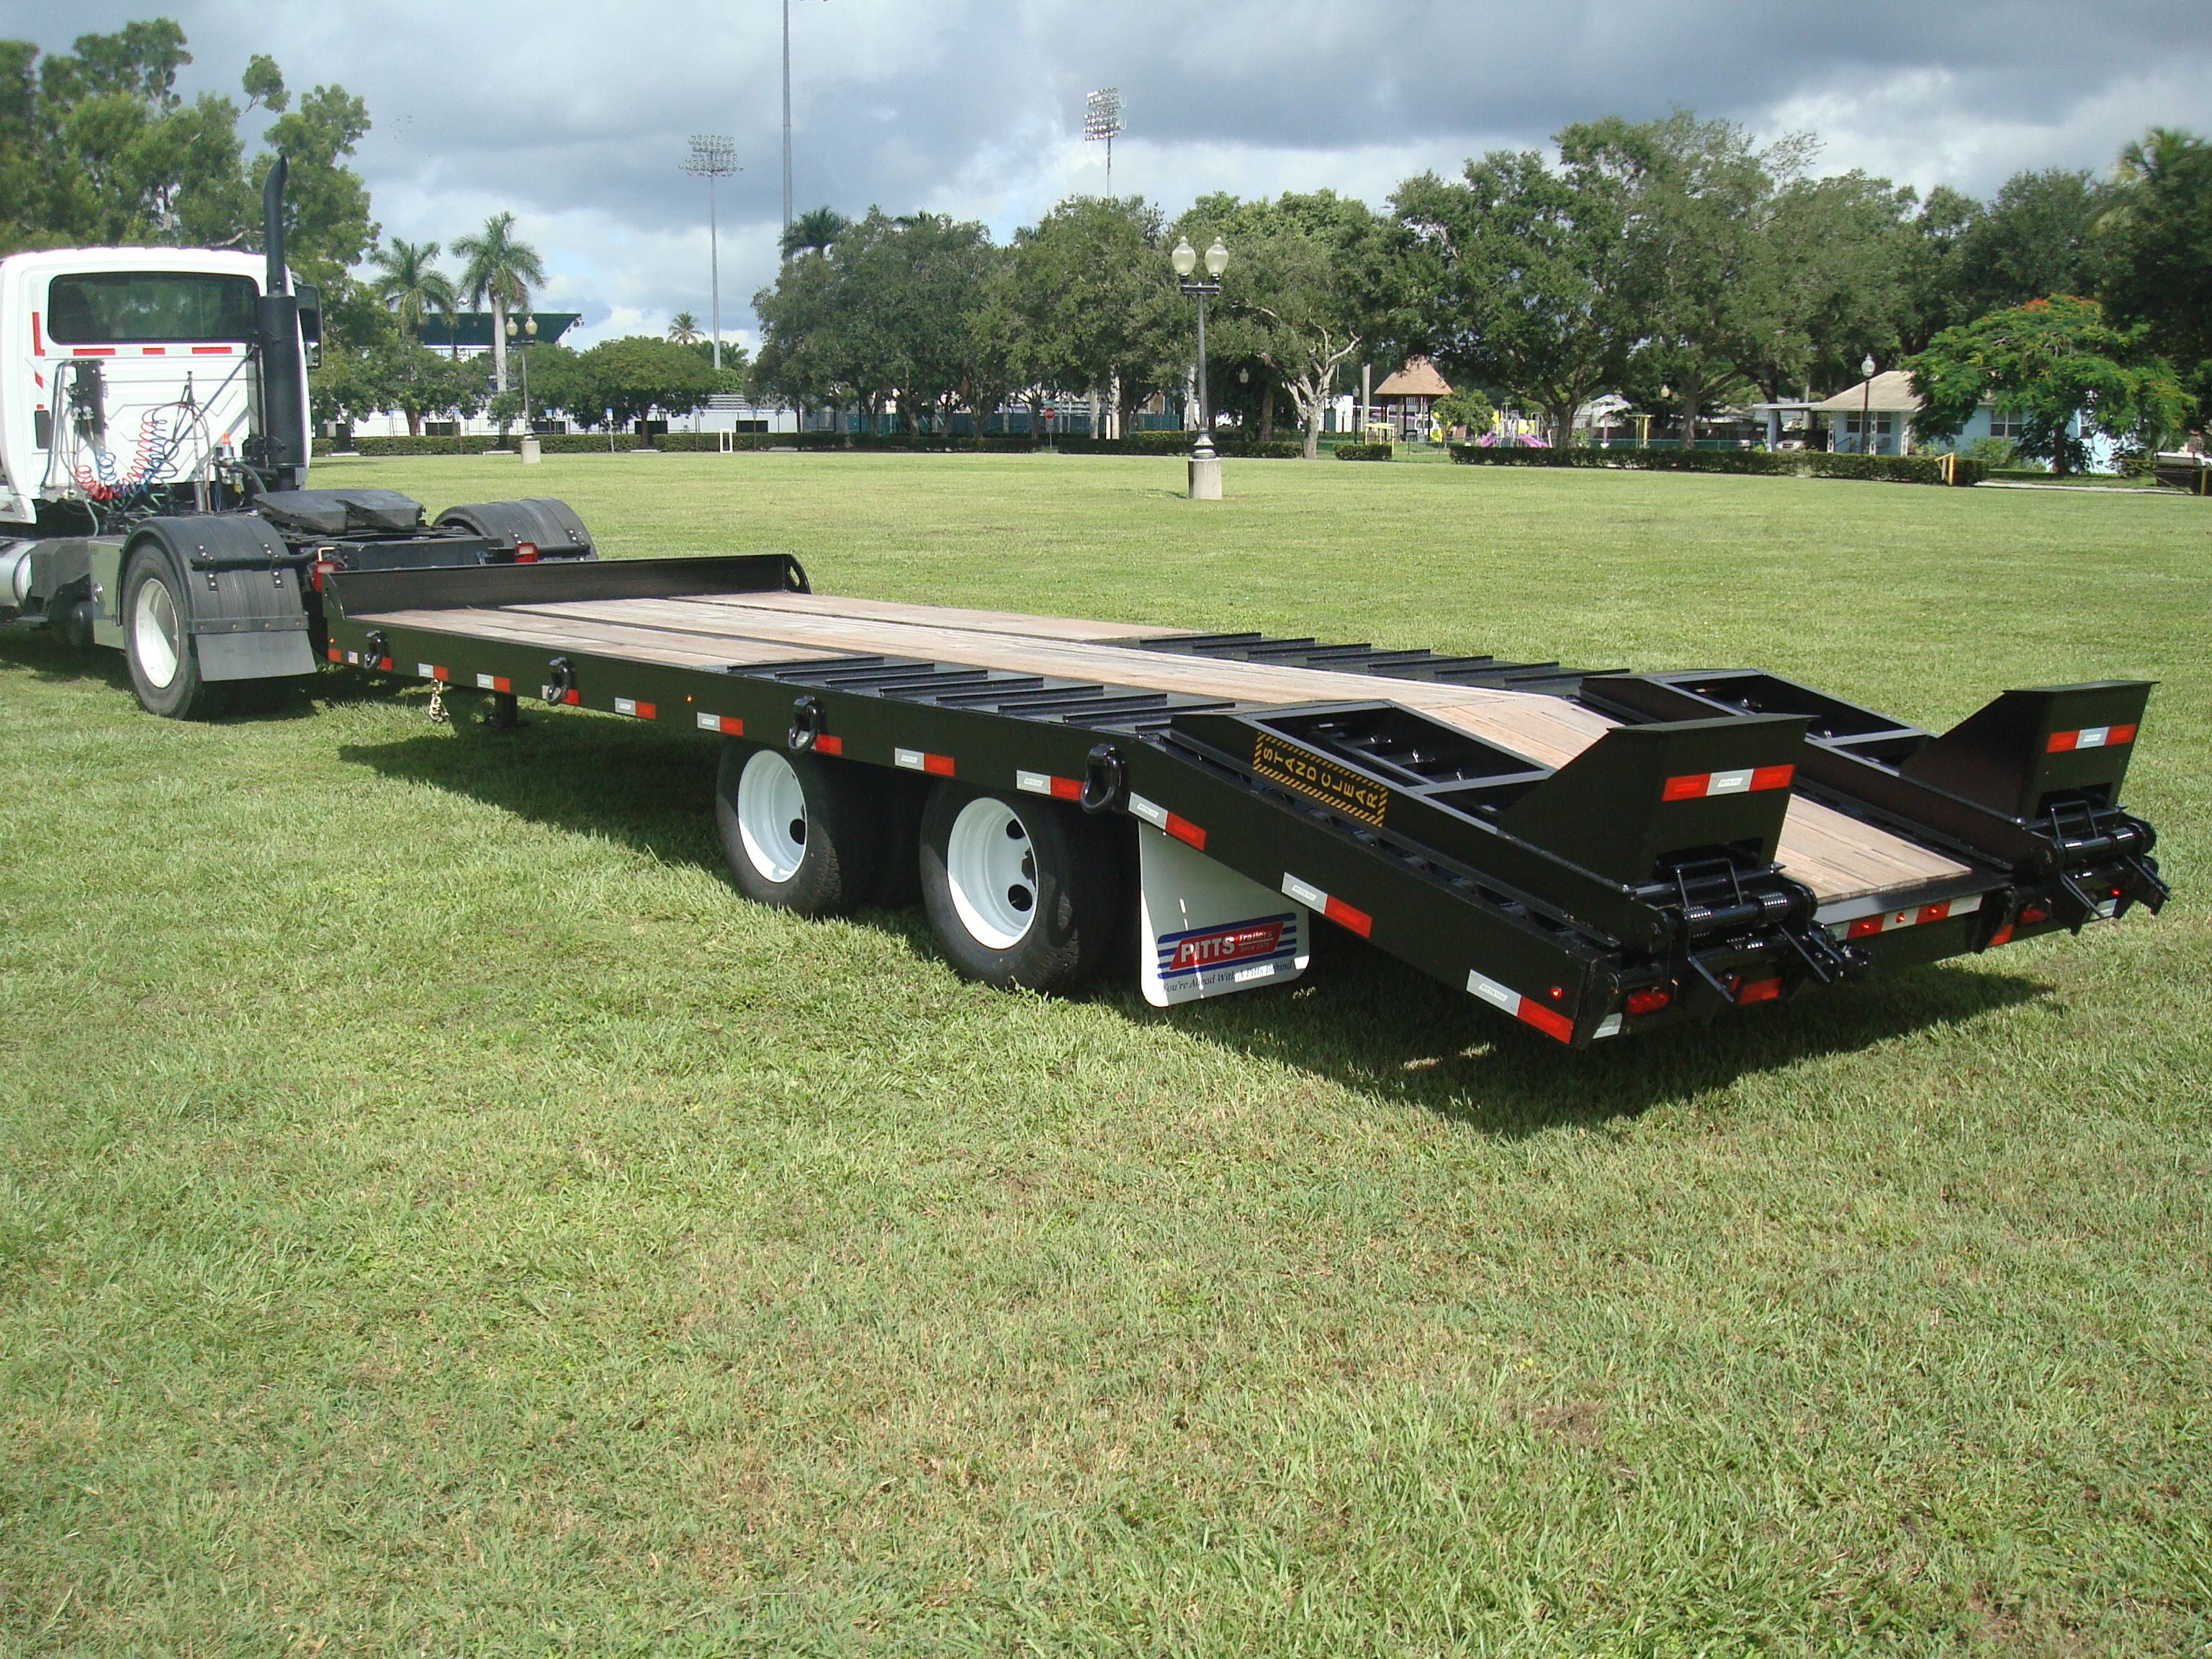 New 2021 PITTS TRAILERS TA20, TAGALONG